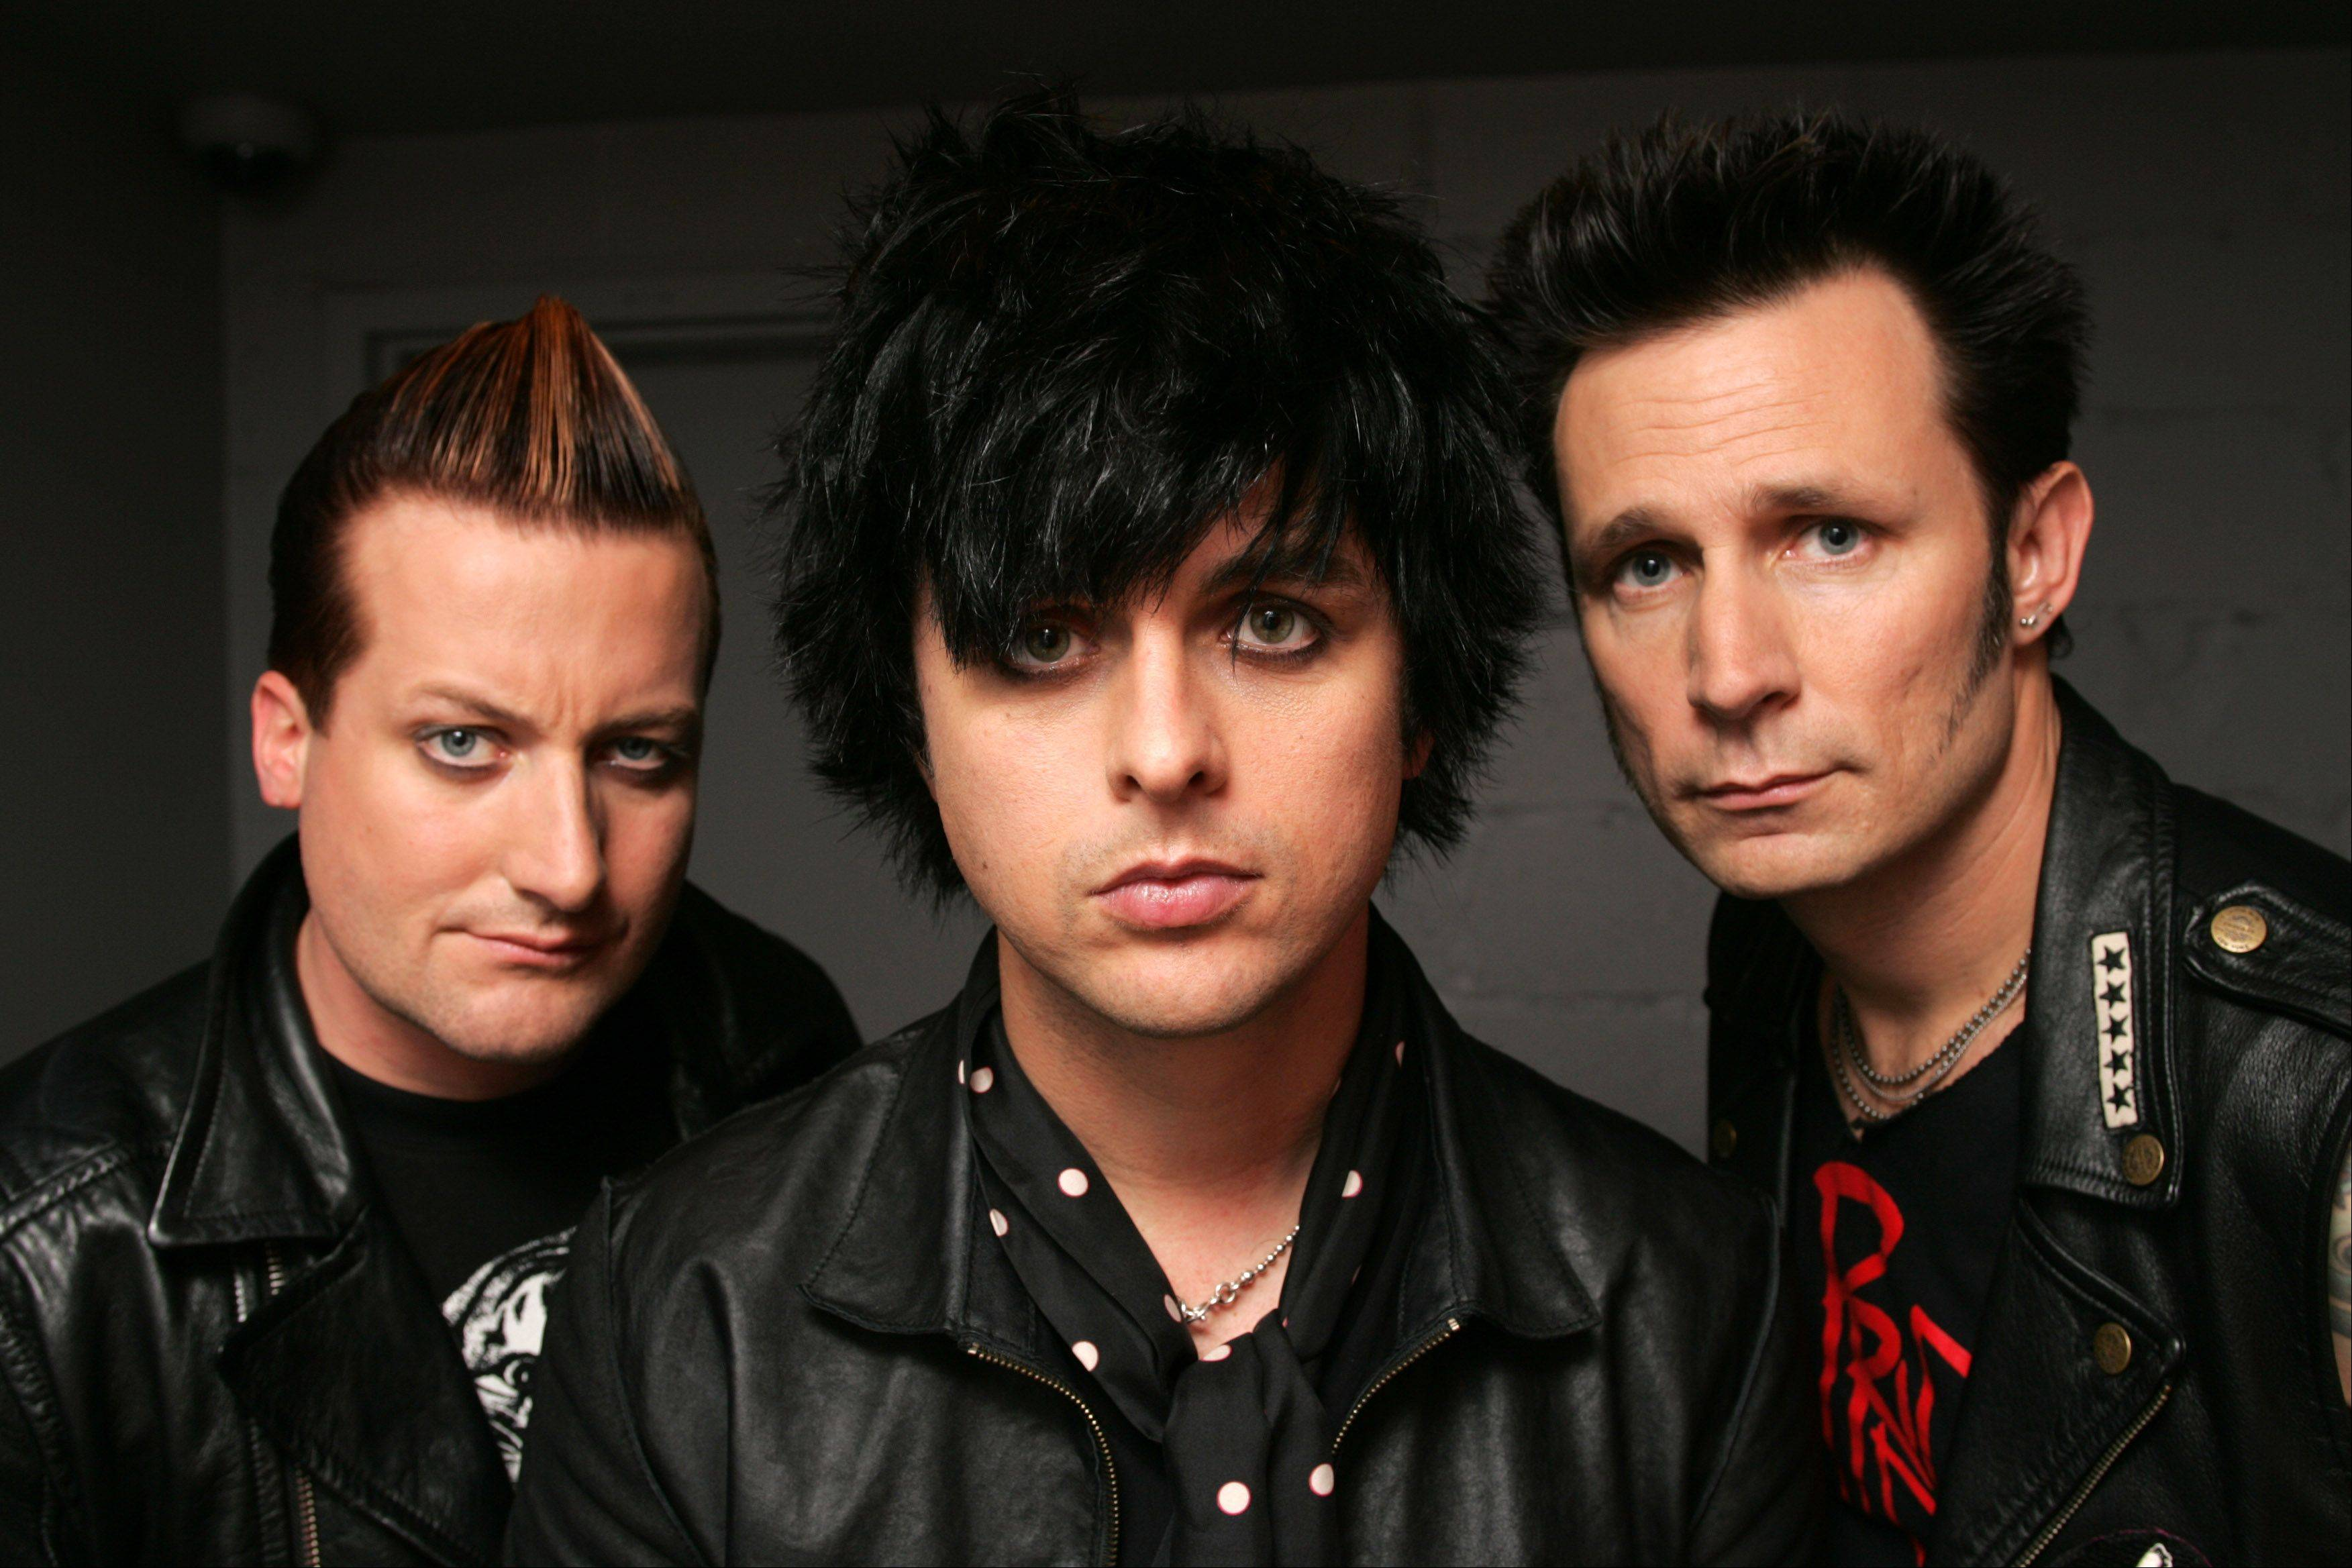 Green Day plays the Allstate Arena in Rosemont Thursday.